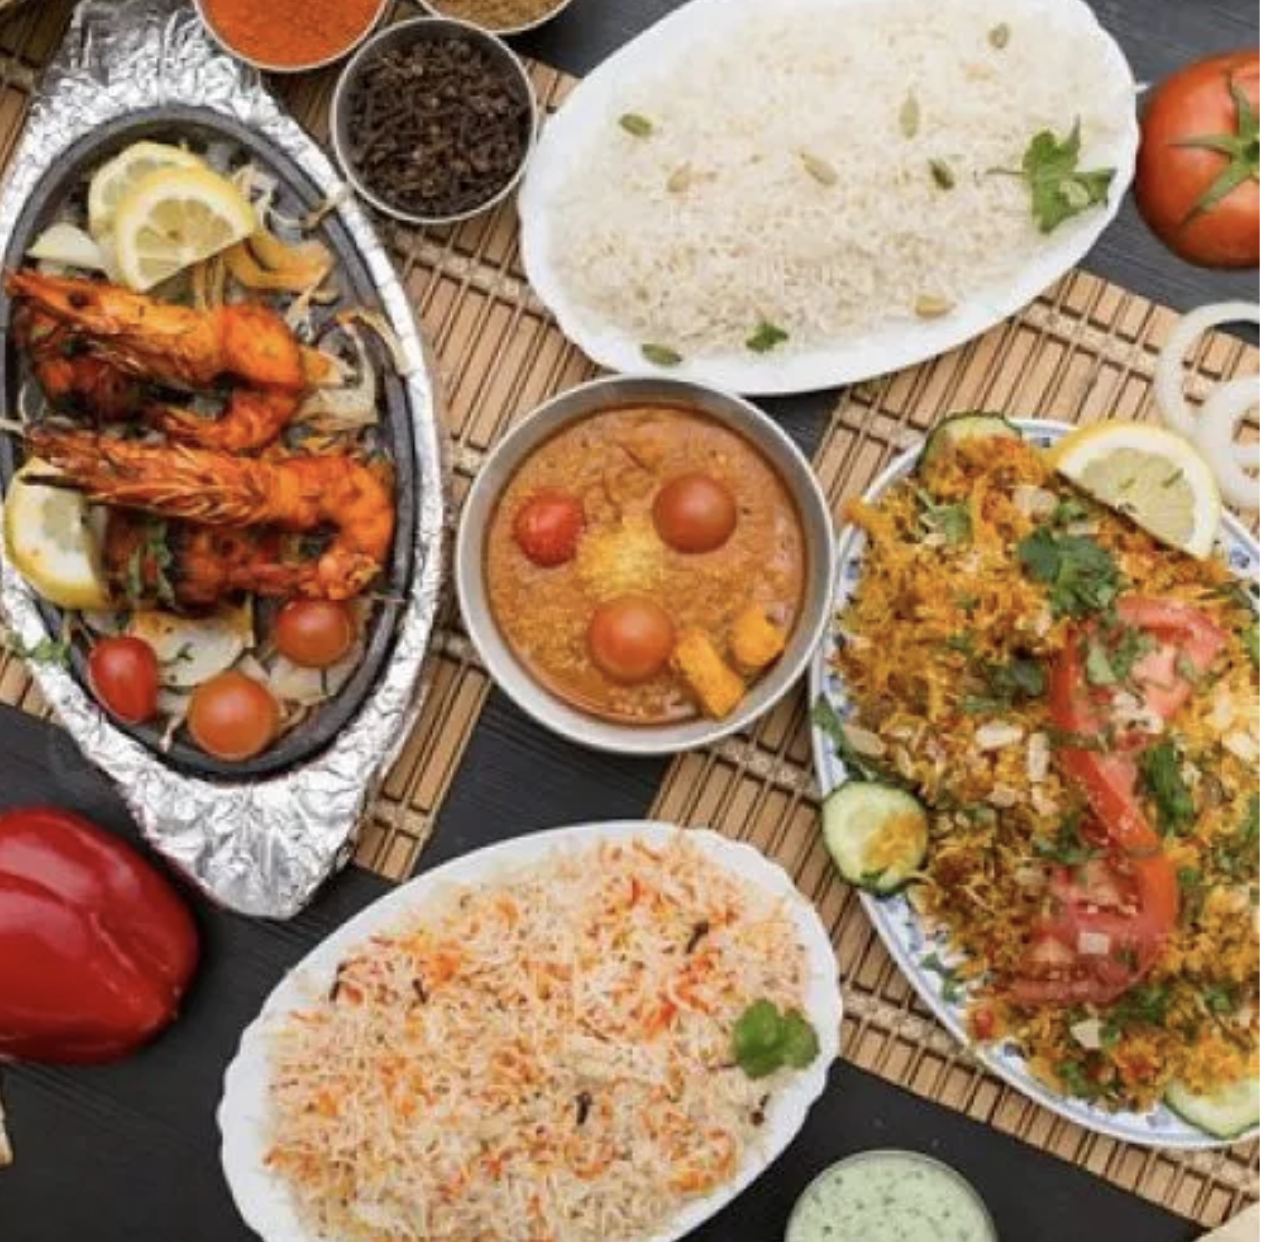 An overhead view of rice, seafood, and meat dishes